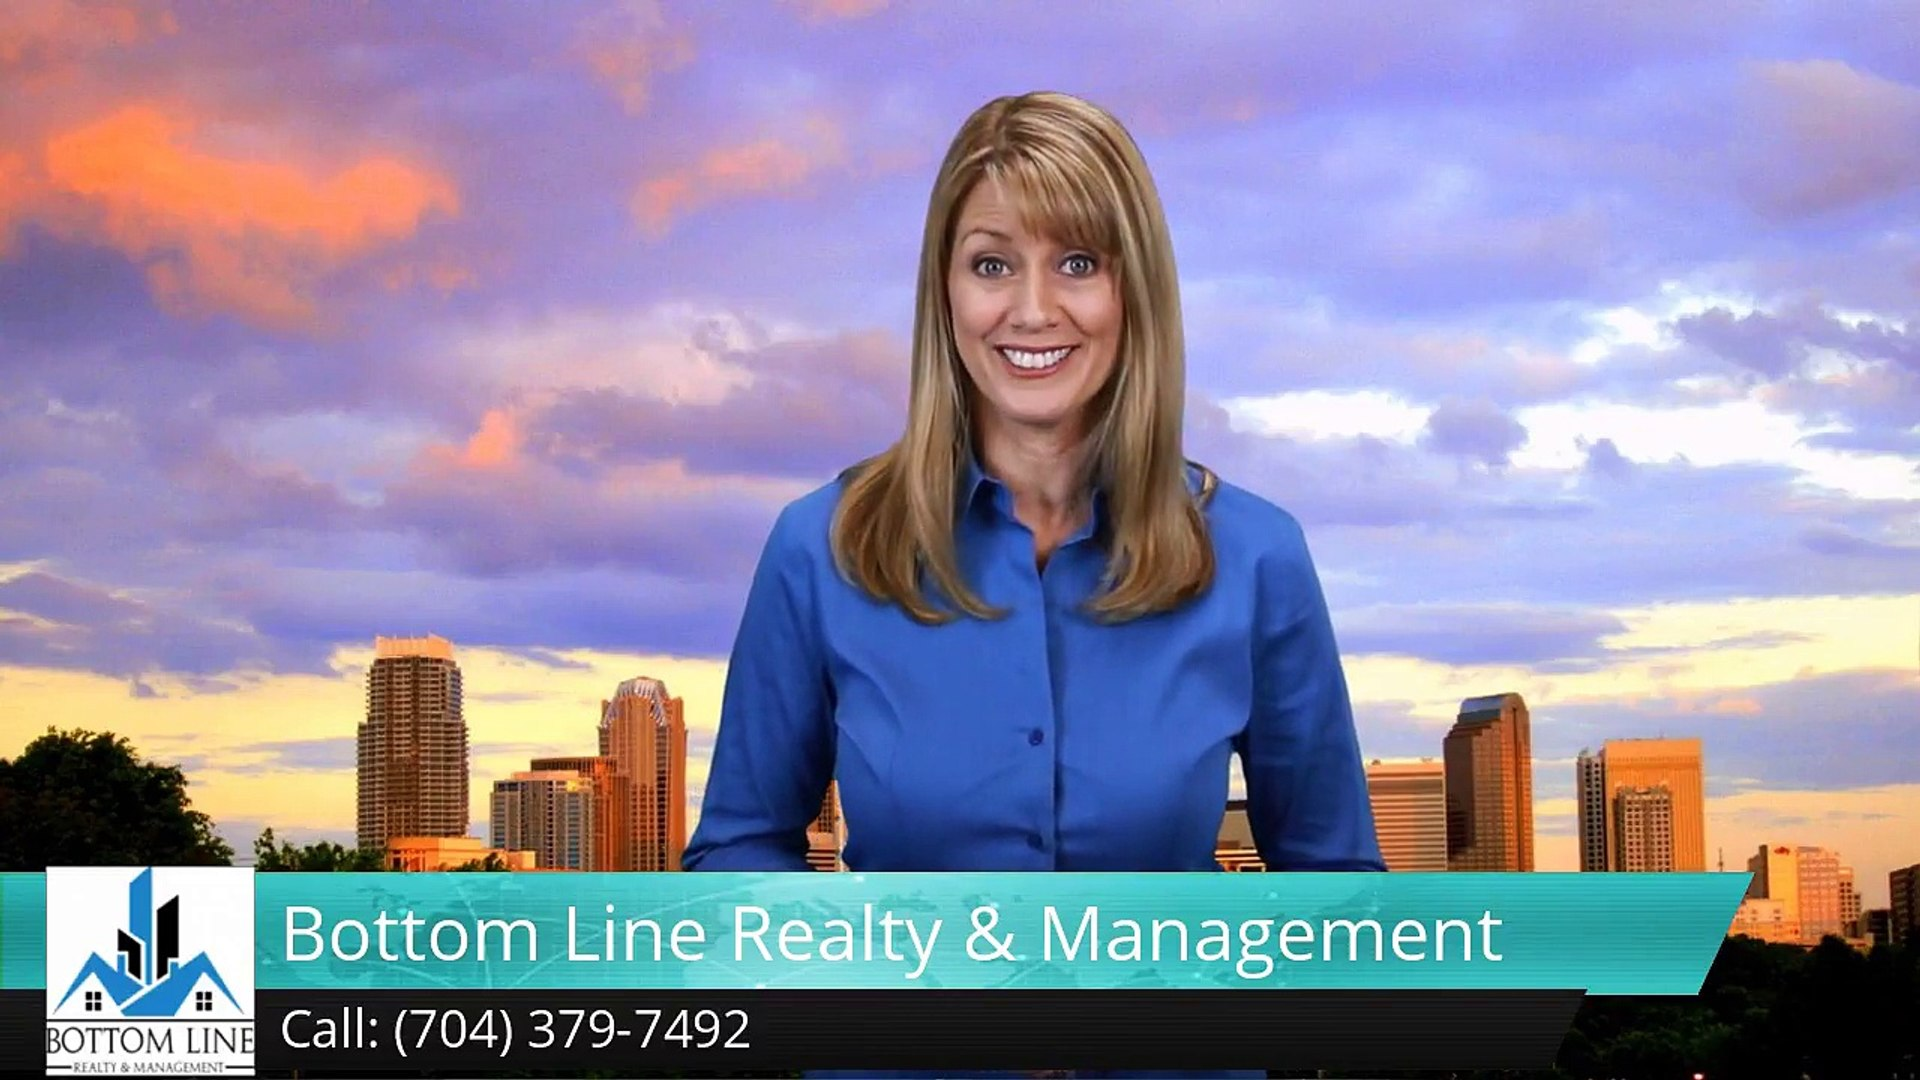 Bottom Line Realty & Management CharlotteOutstandingFive Star Review by Jordan Hauser